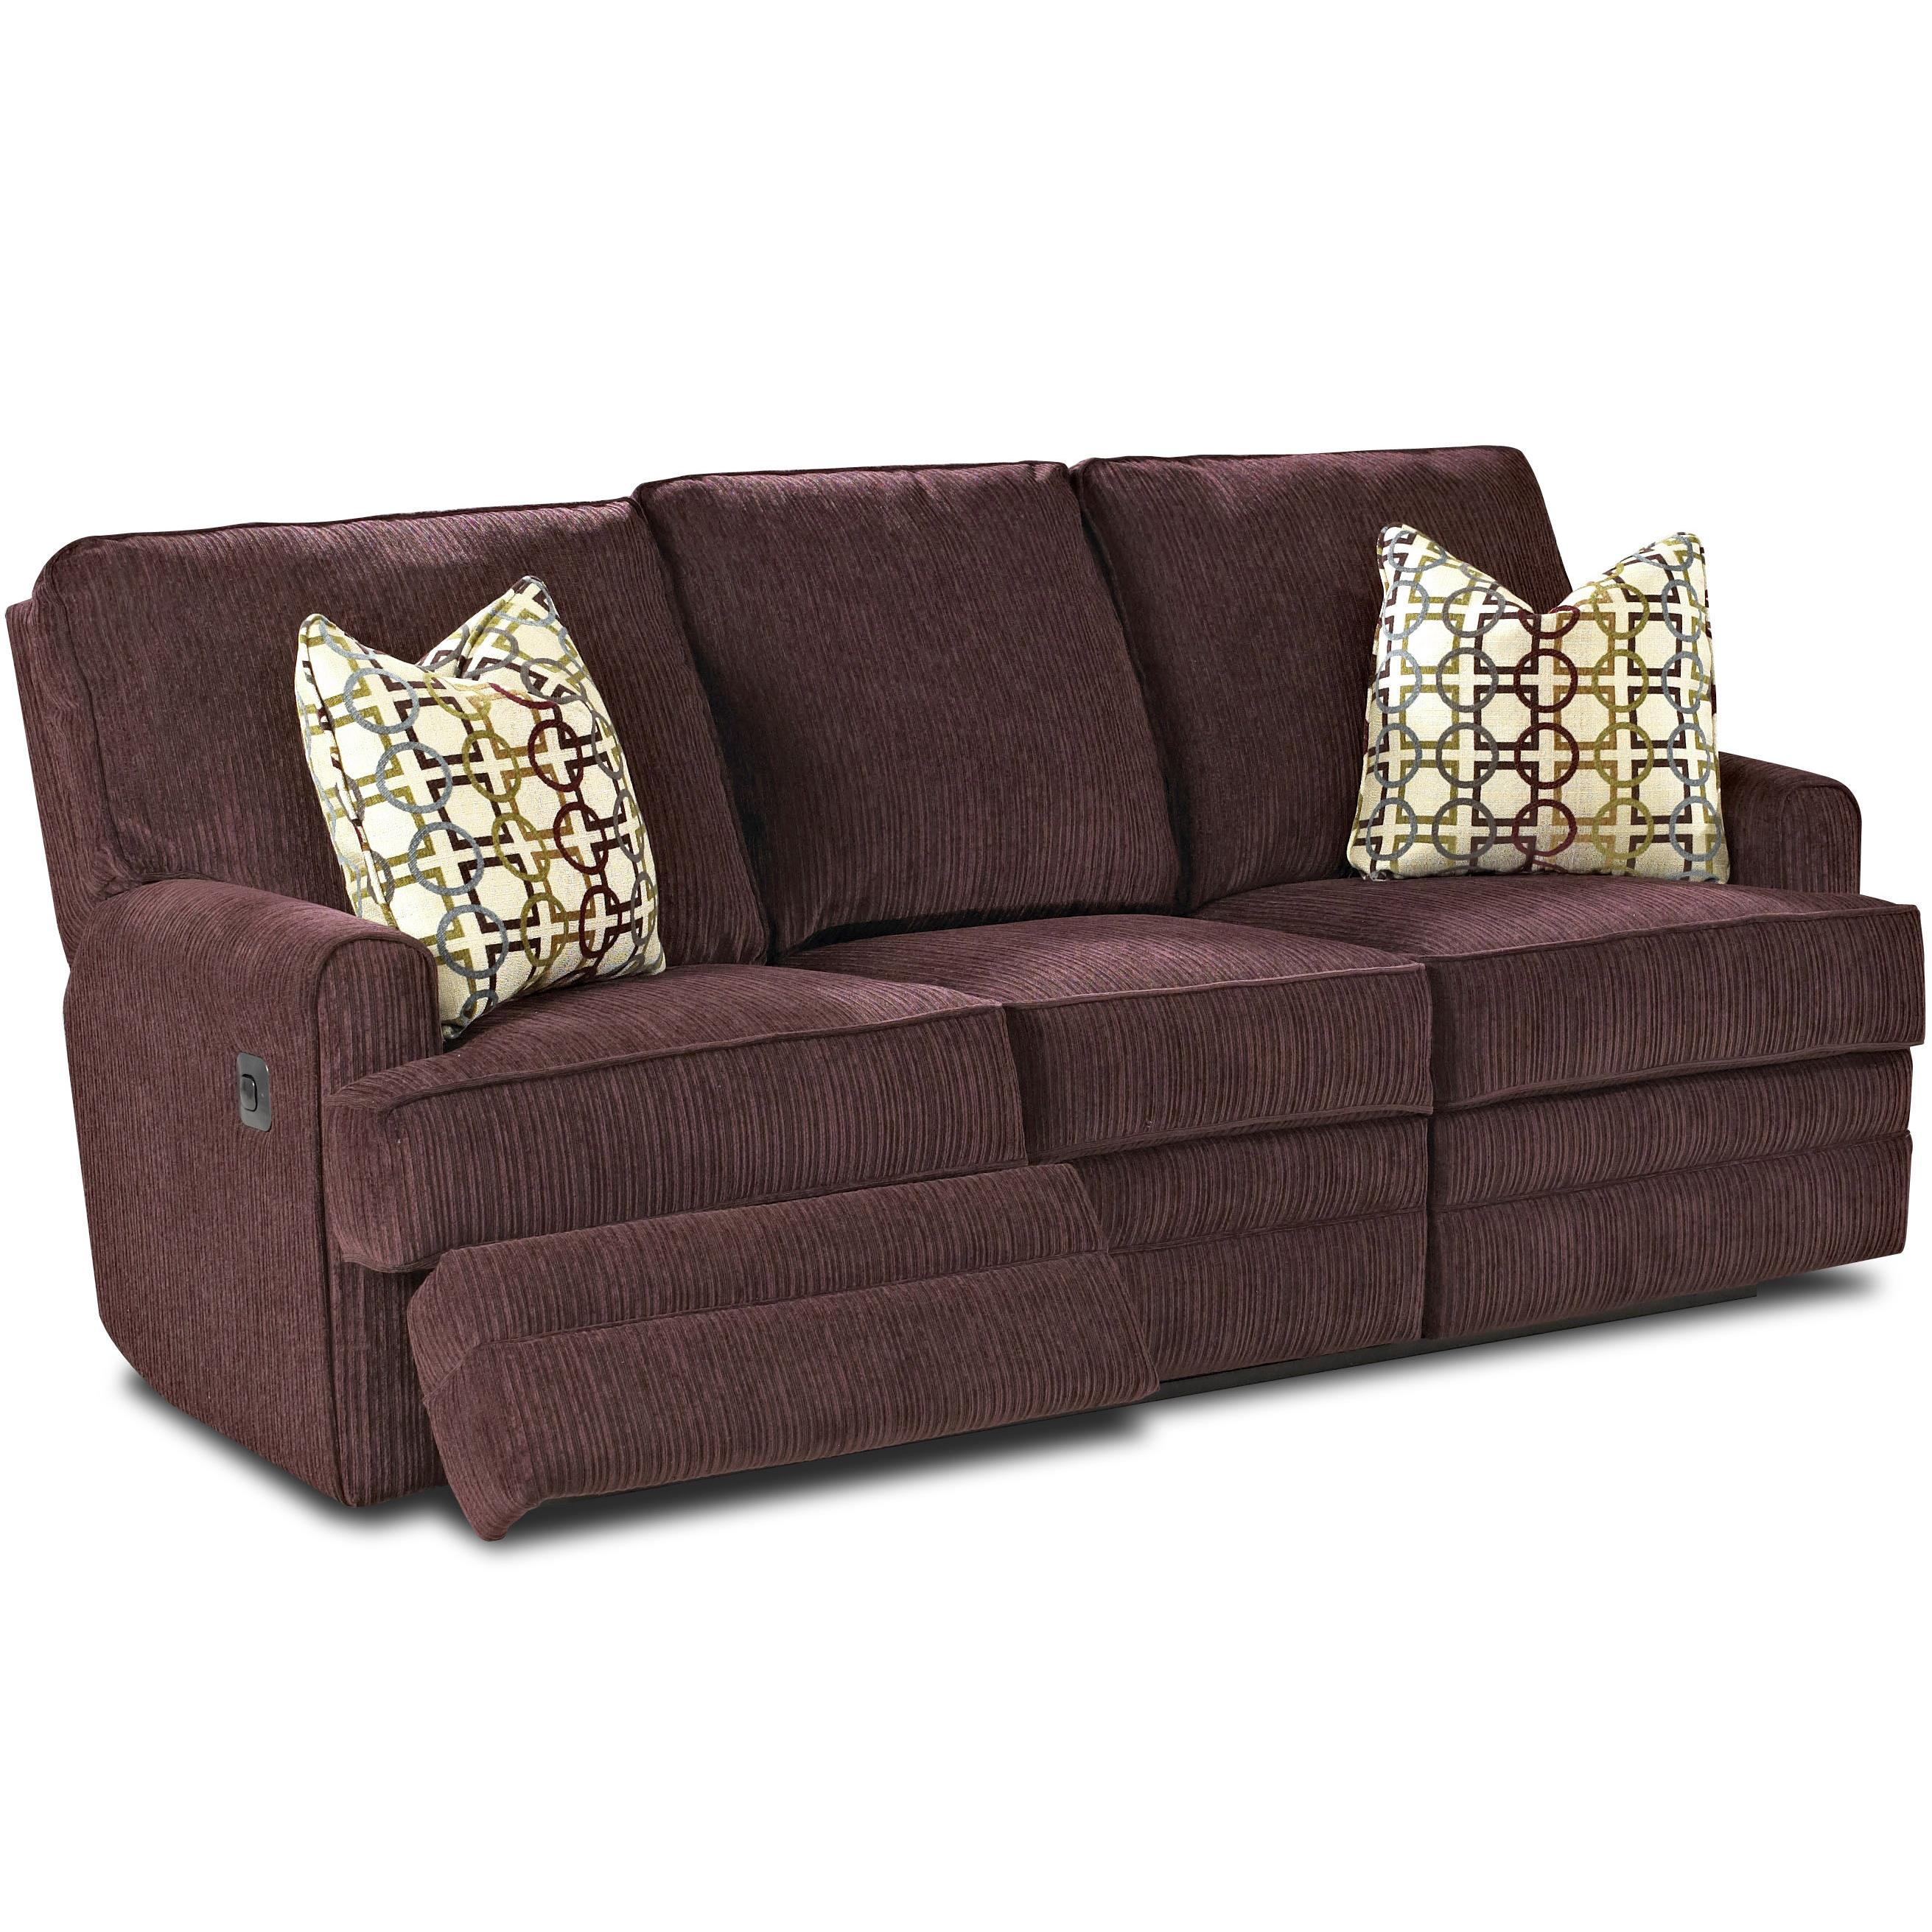 Callahan Casual Reclining Sofa with Track Arms and Pillows  : products2Fklaussner2Fcolor2Fcallahan20788037880320rs korey20eggplant b2 from wolffurniture.com size 2622 x 2622 jpeg 694kB